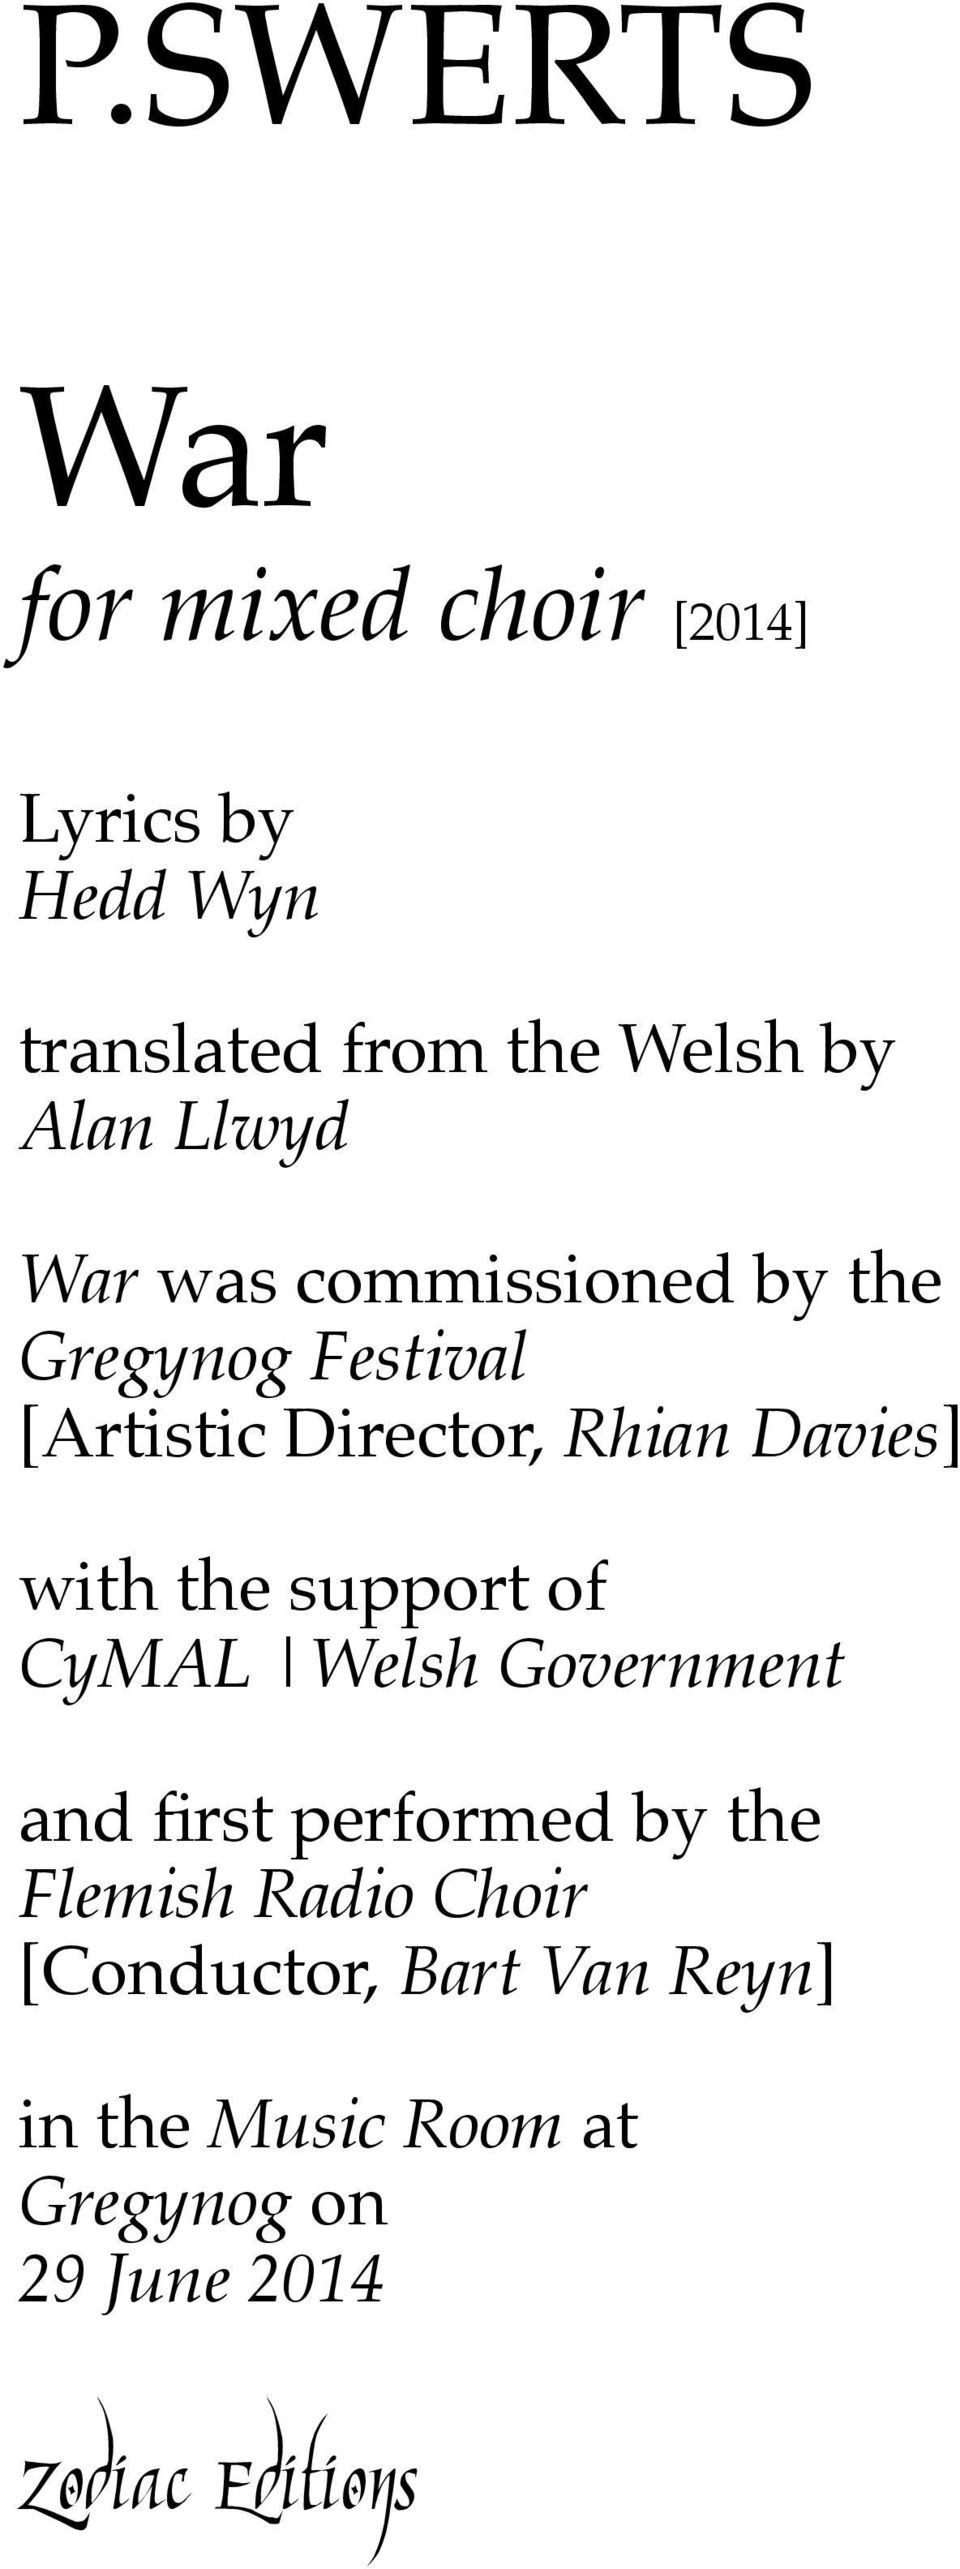 P SWERTS  for mixed choir [2014] translated from the Welsh by Alan